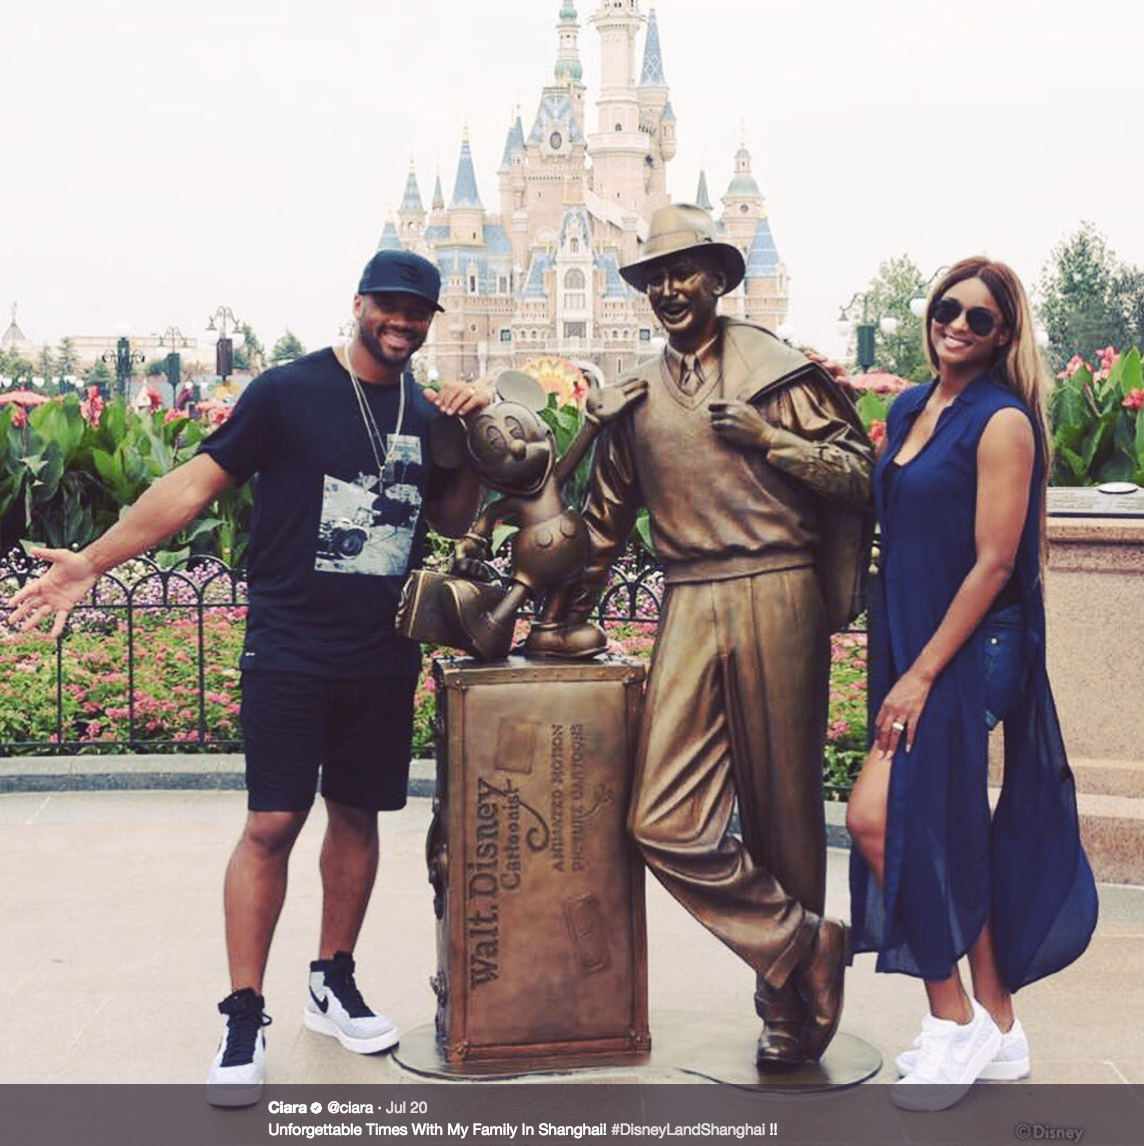 """Unforgettable Times With My Family In Shanghai! #DisneyLandShanghai !!""                      The entire Wilson family has been traveling around China on vacation before training camp starts back in Seattle next week! Ciara, Russell, Sienna and Future spent time at Disneyland Shanghai, the Great Wall, shopping in local markets, and doing multiple photoshoots (they are the Wilsons, after all)! Russell was there in part as a rep for Nike, and spent time at their Shanghai campus doing drills with local children (and Future Jr.!) and ""bringing football to China"".  (Image: @ciara / twitter.com/ciara)"